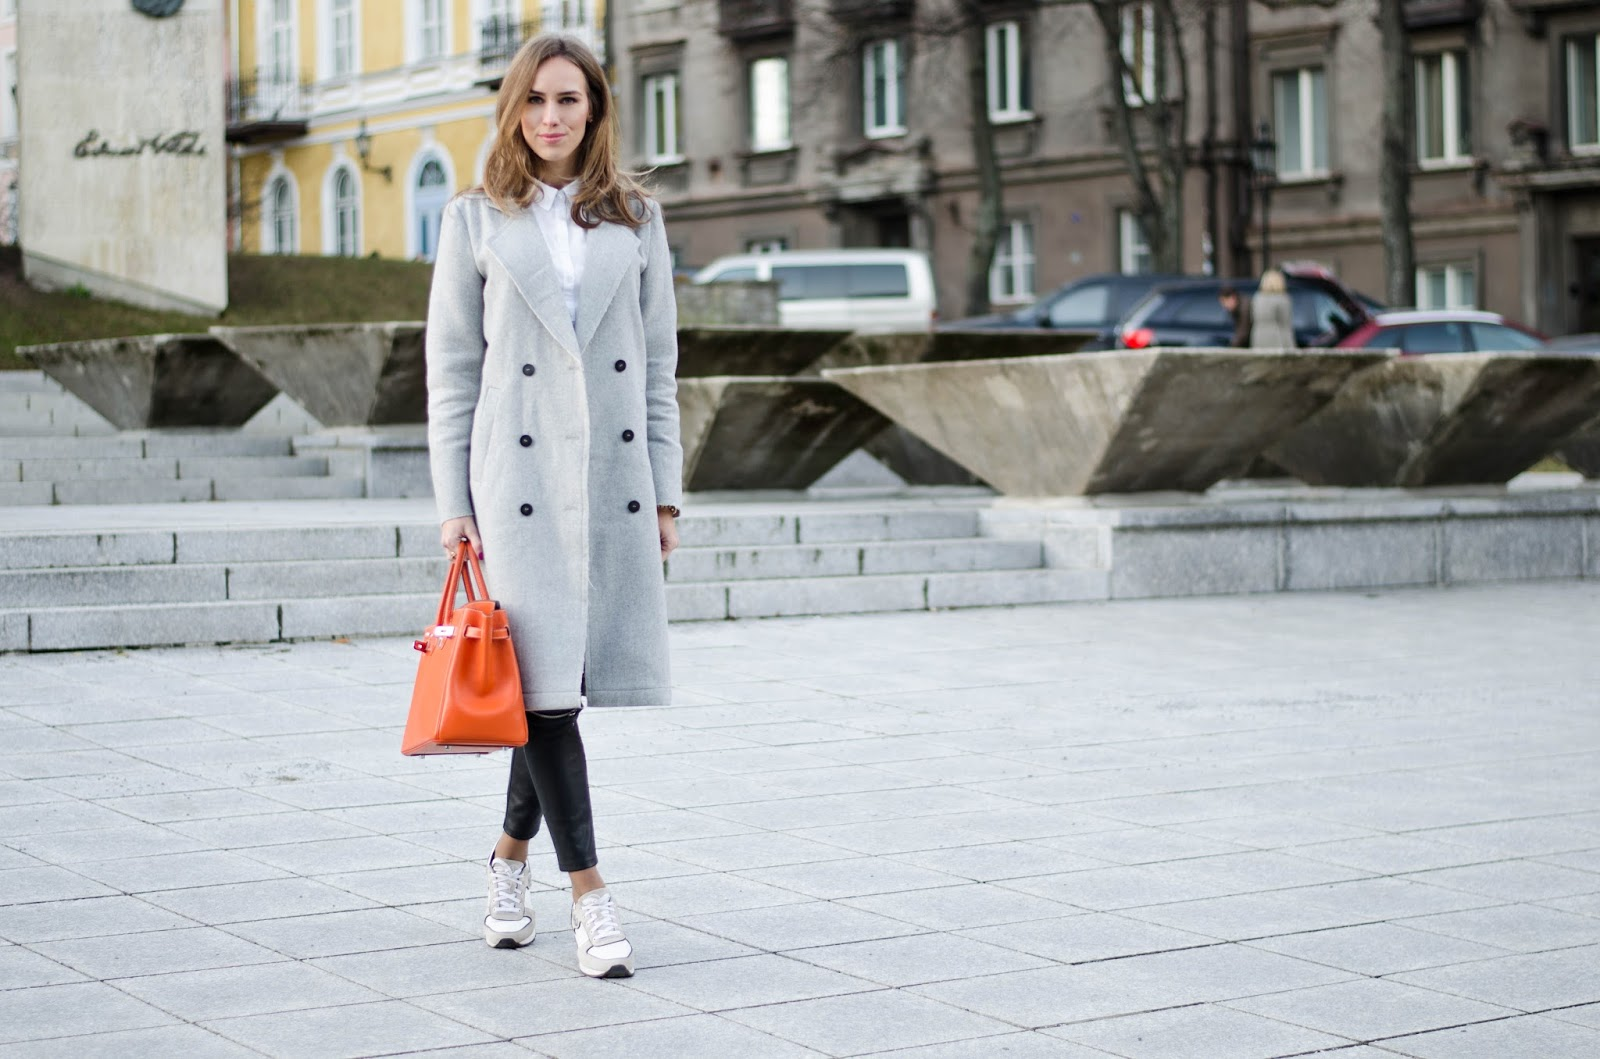 kristjaana mere vila gray wool coat armani white sneakers birkin bag winter fashion